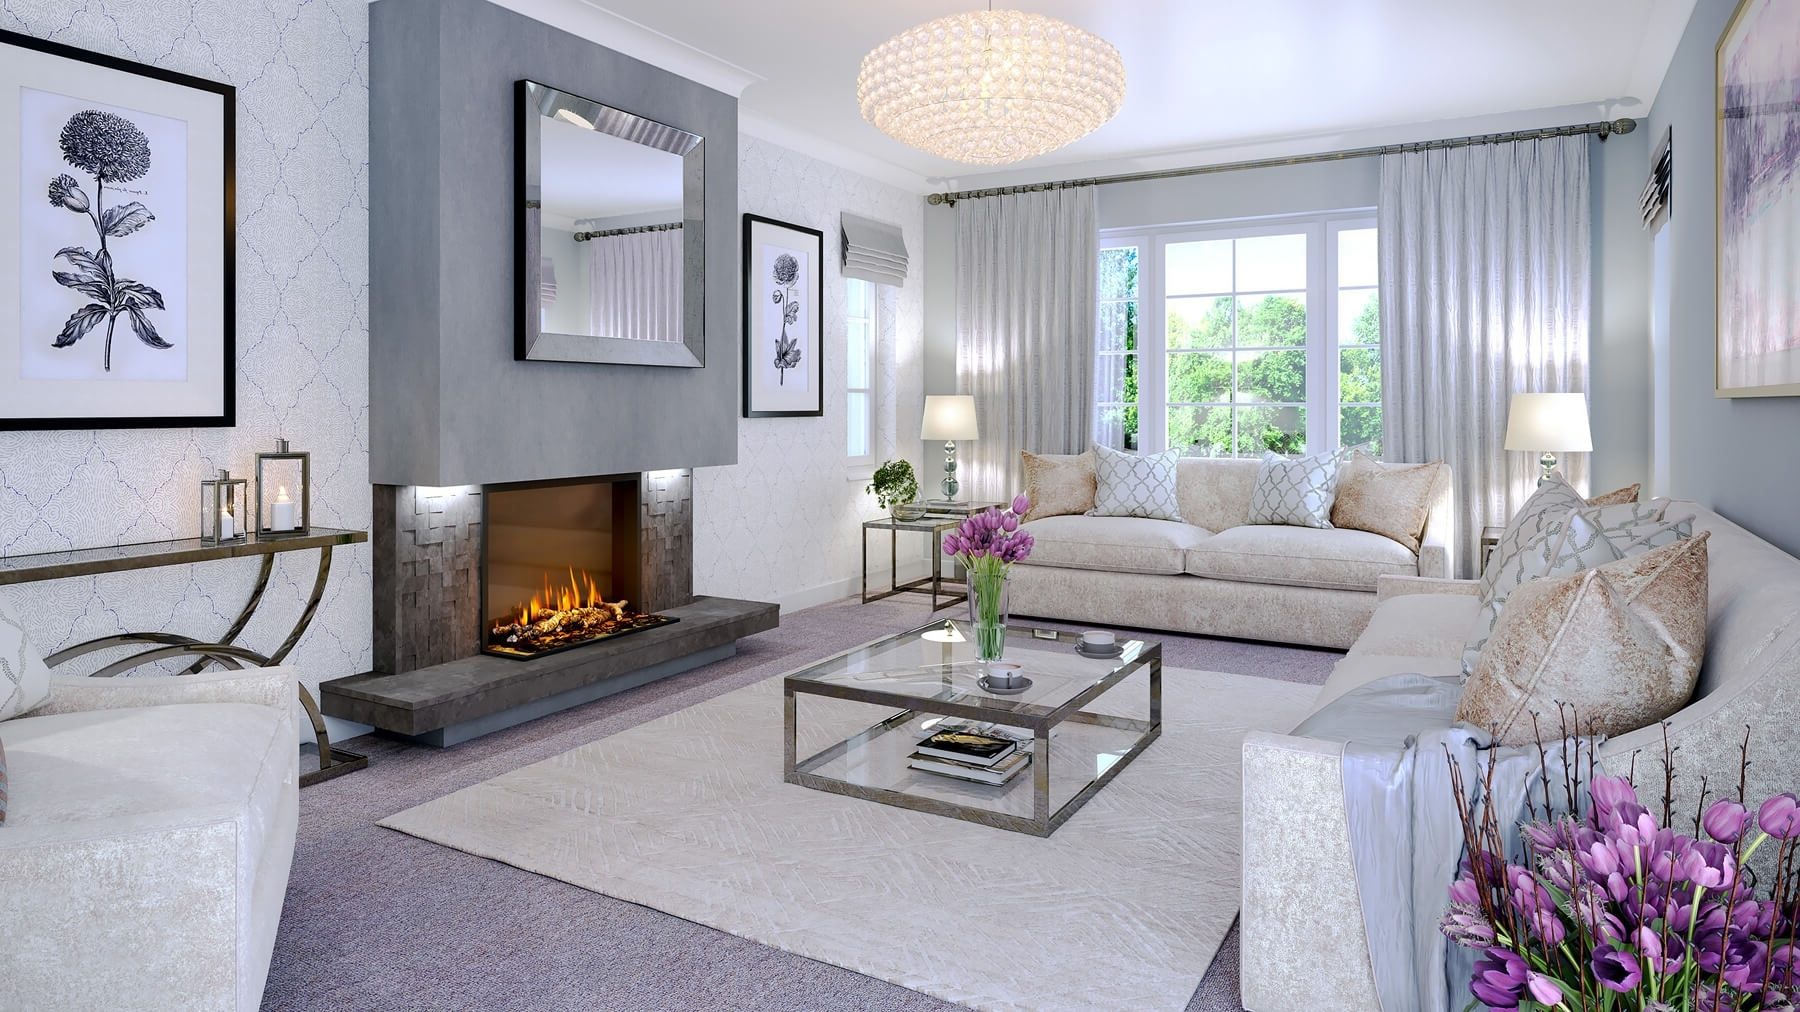 14 False Breast With Grey Mosaic Tiles And Floating Hearth 30+ Small Living Room With Chimney Breast Inspirations